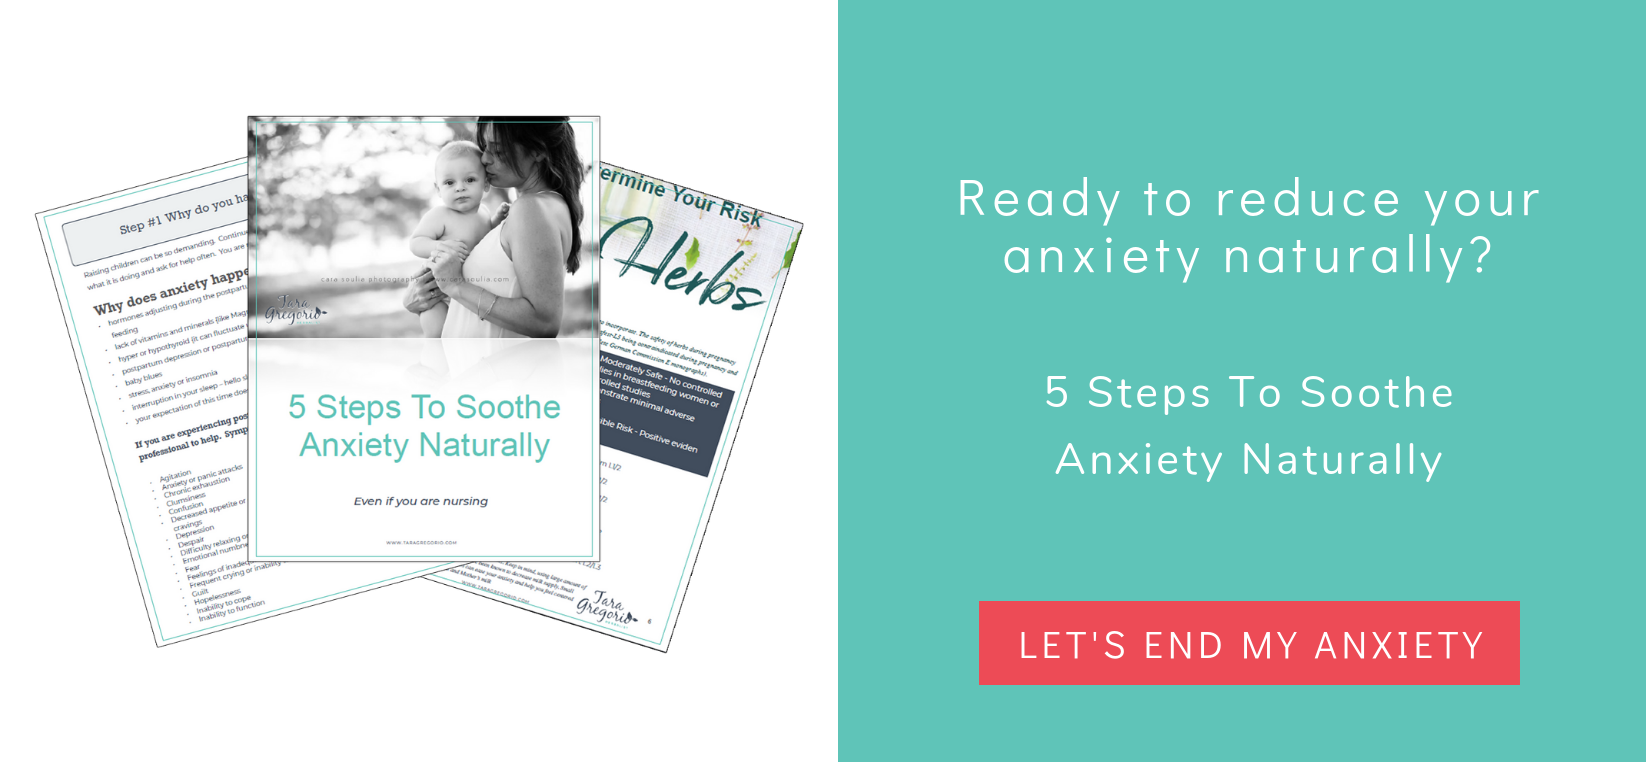 Let's end anxiety